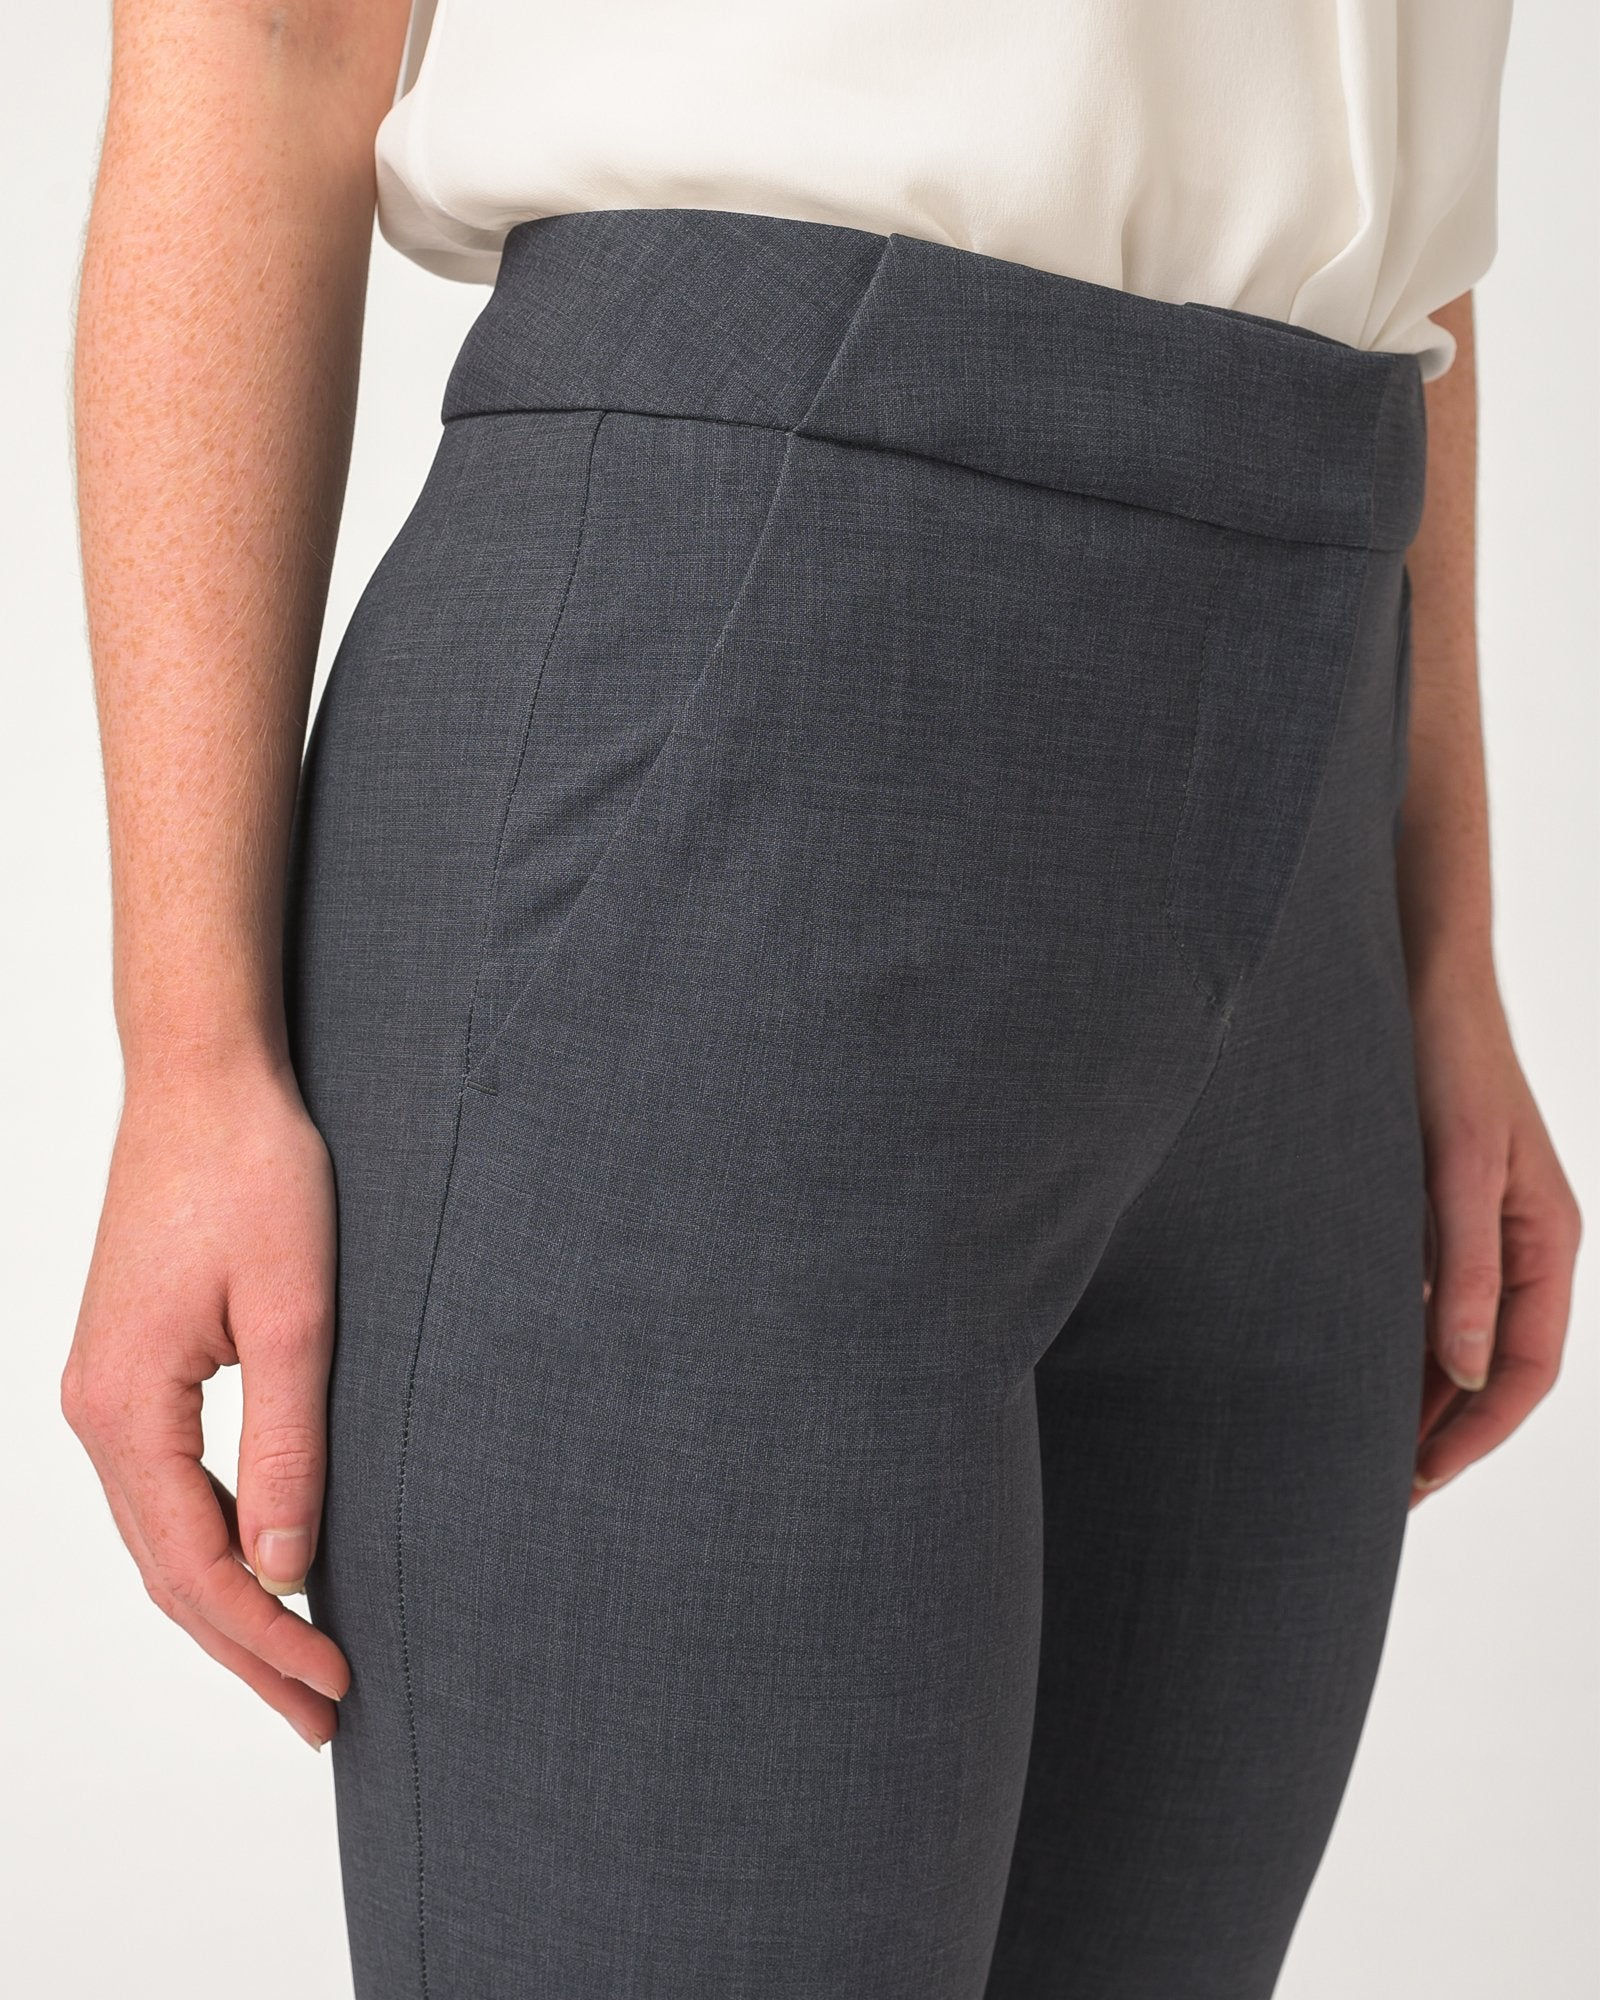 Power Move Pant Charcoal 2.0